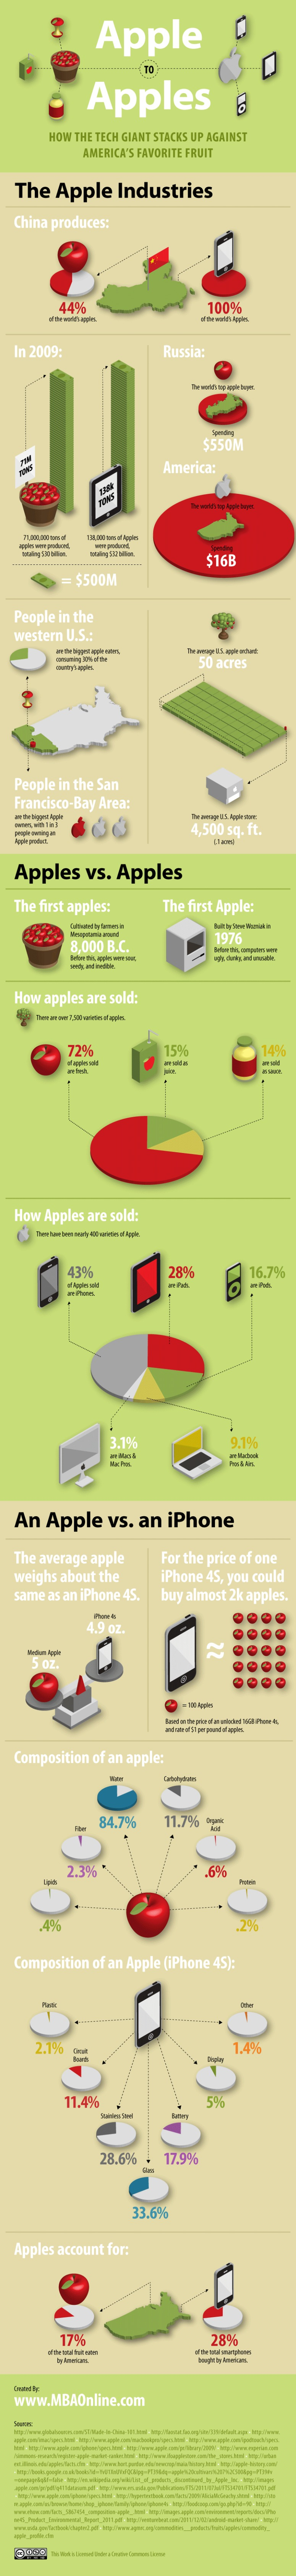 Comparing Apples and Apple